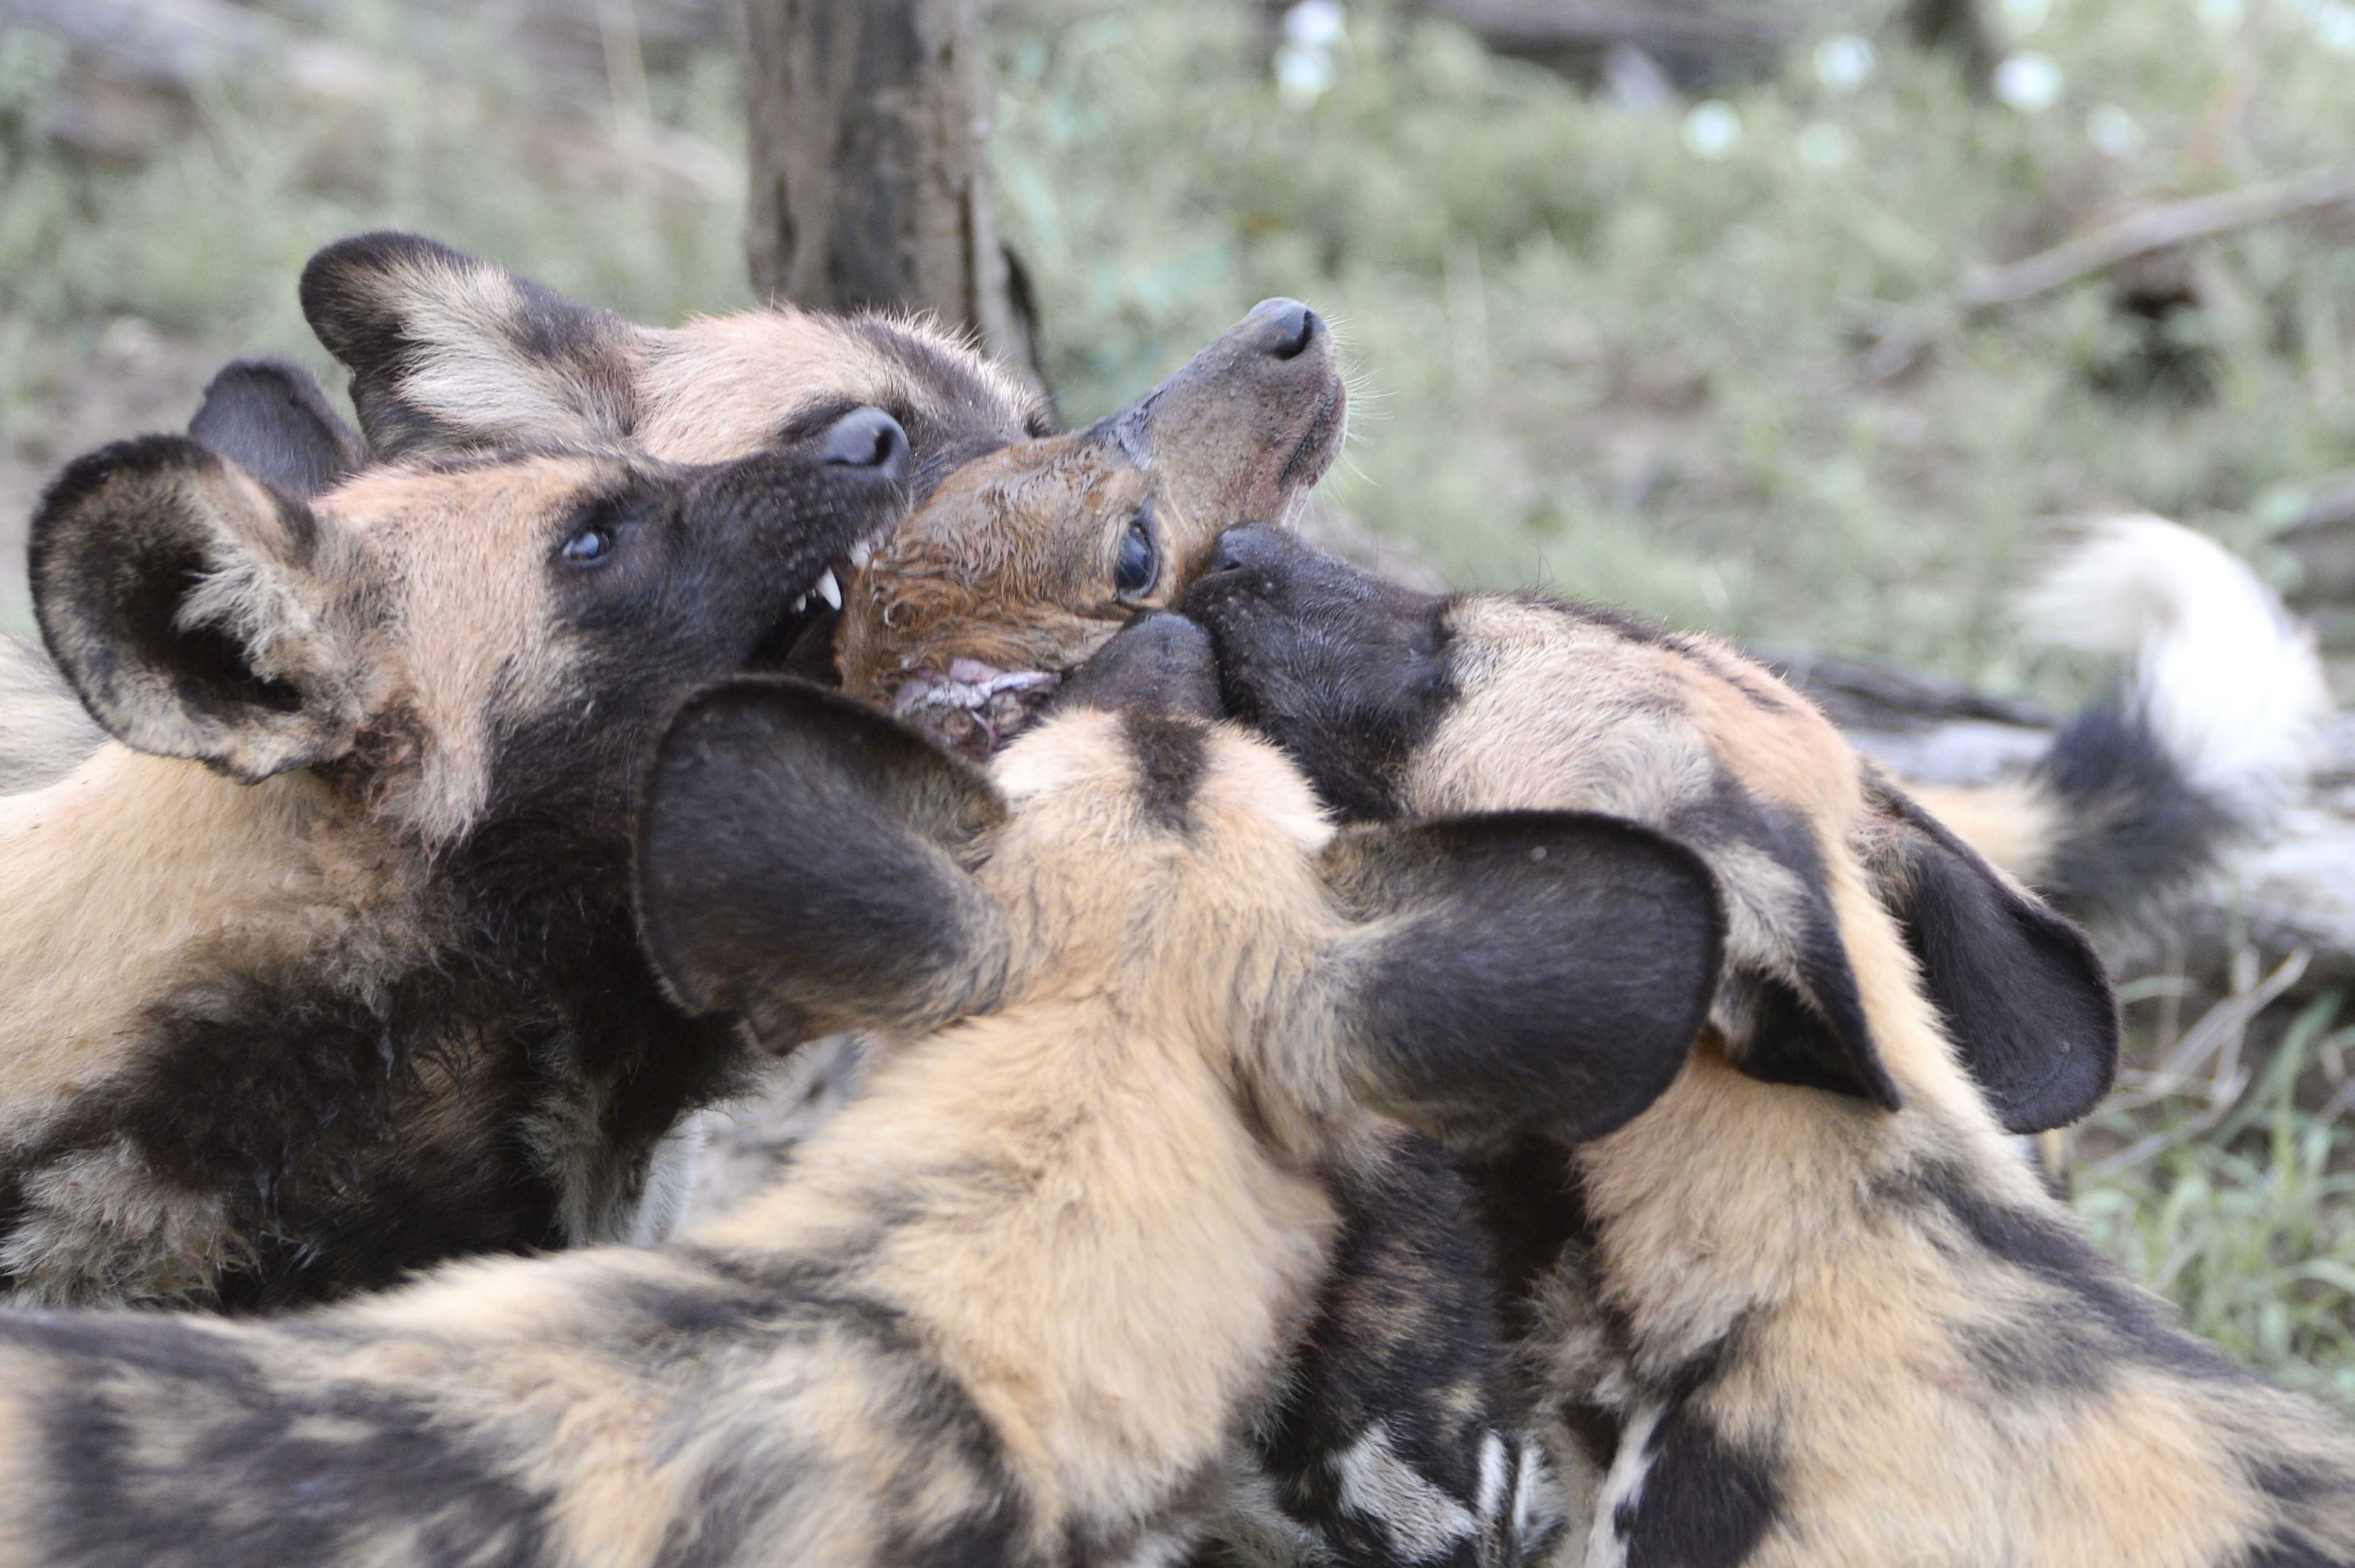 Wild Dogs (Lycaon_pictus) had hunted a Steenbok/Raphicerus c.©Johannes Ratermann